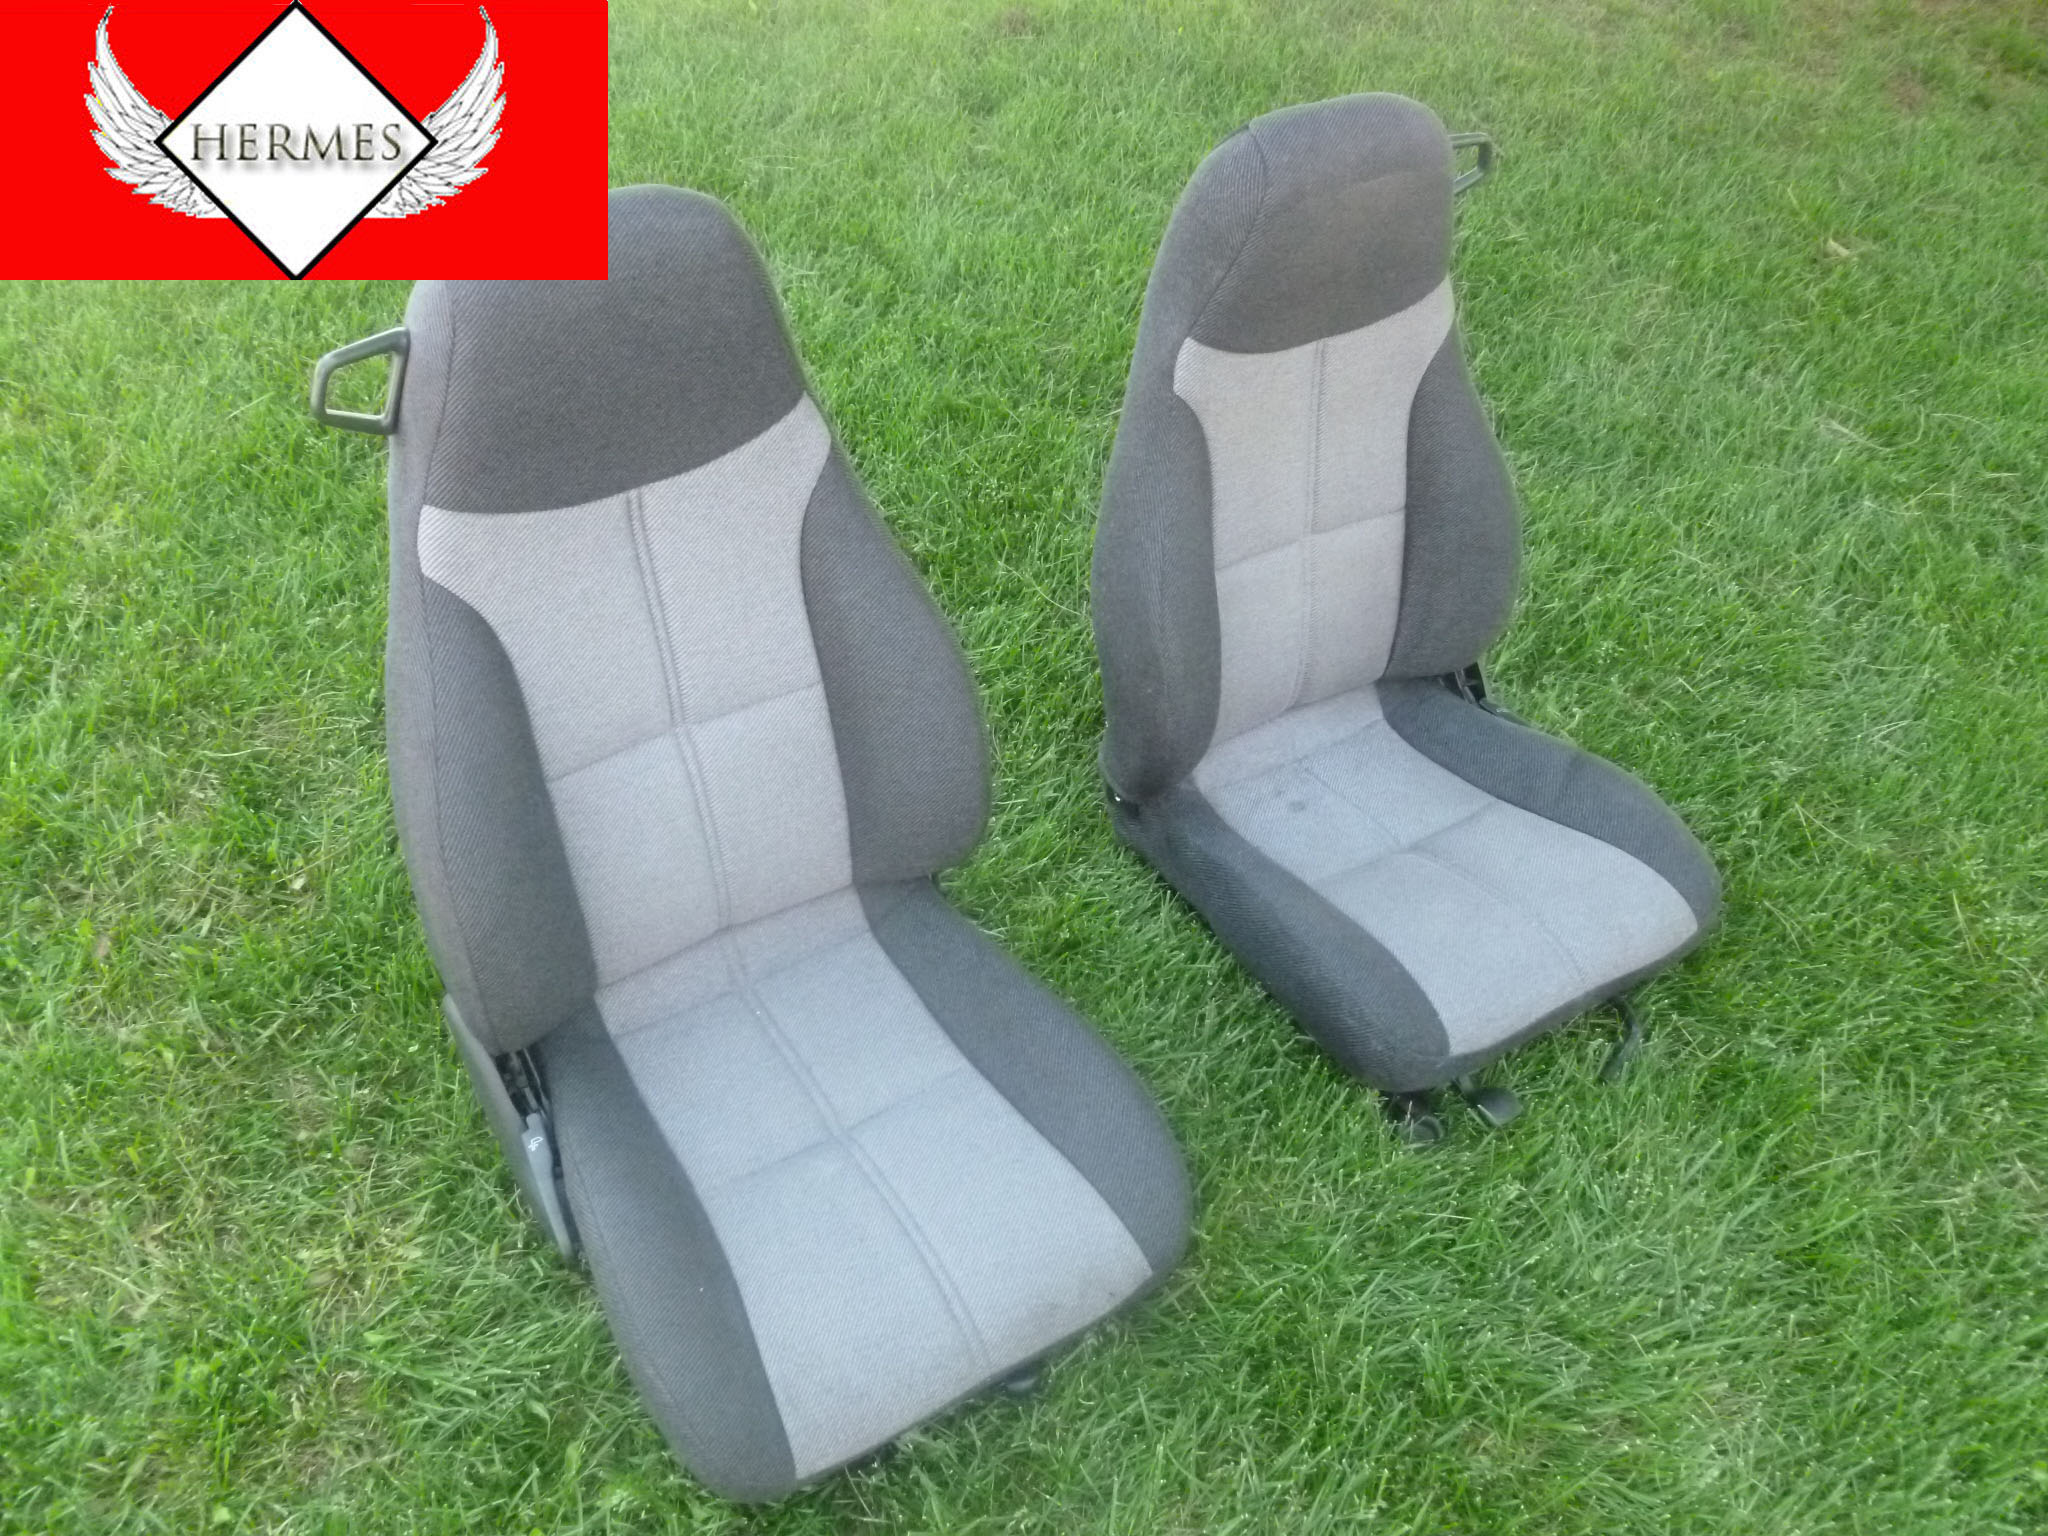 1995 Chevy Camaro - Front Seats (Pair) - Hermes Auto Parts